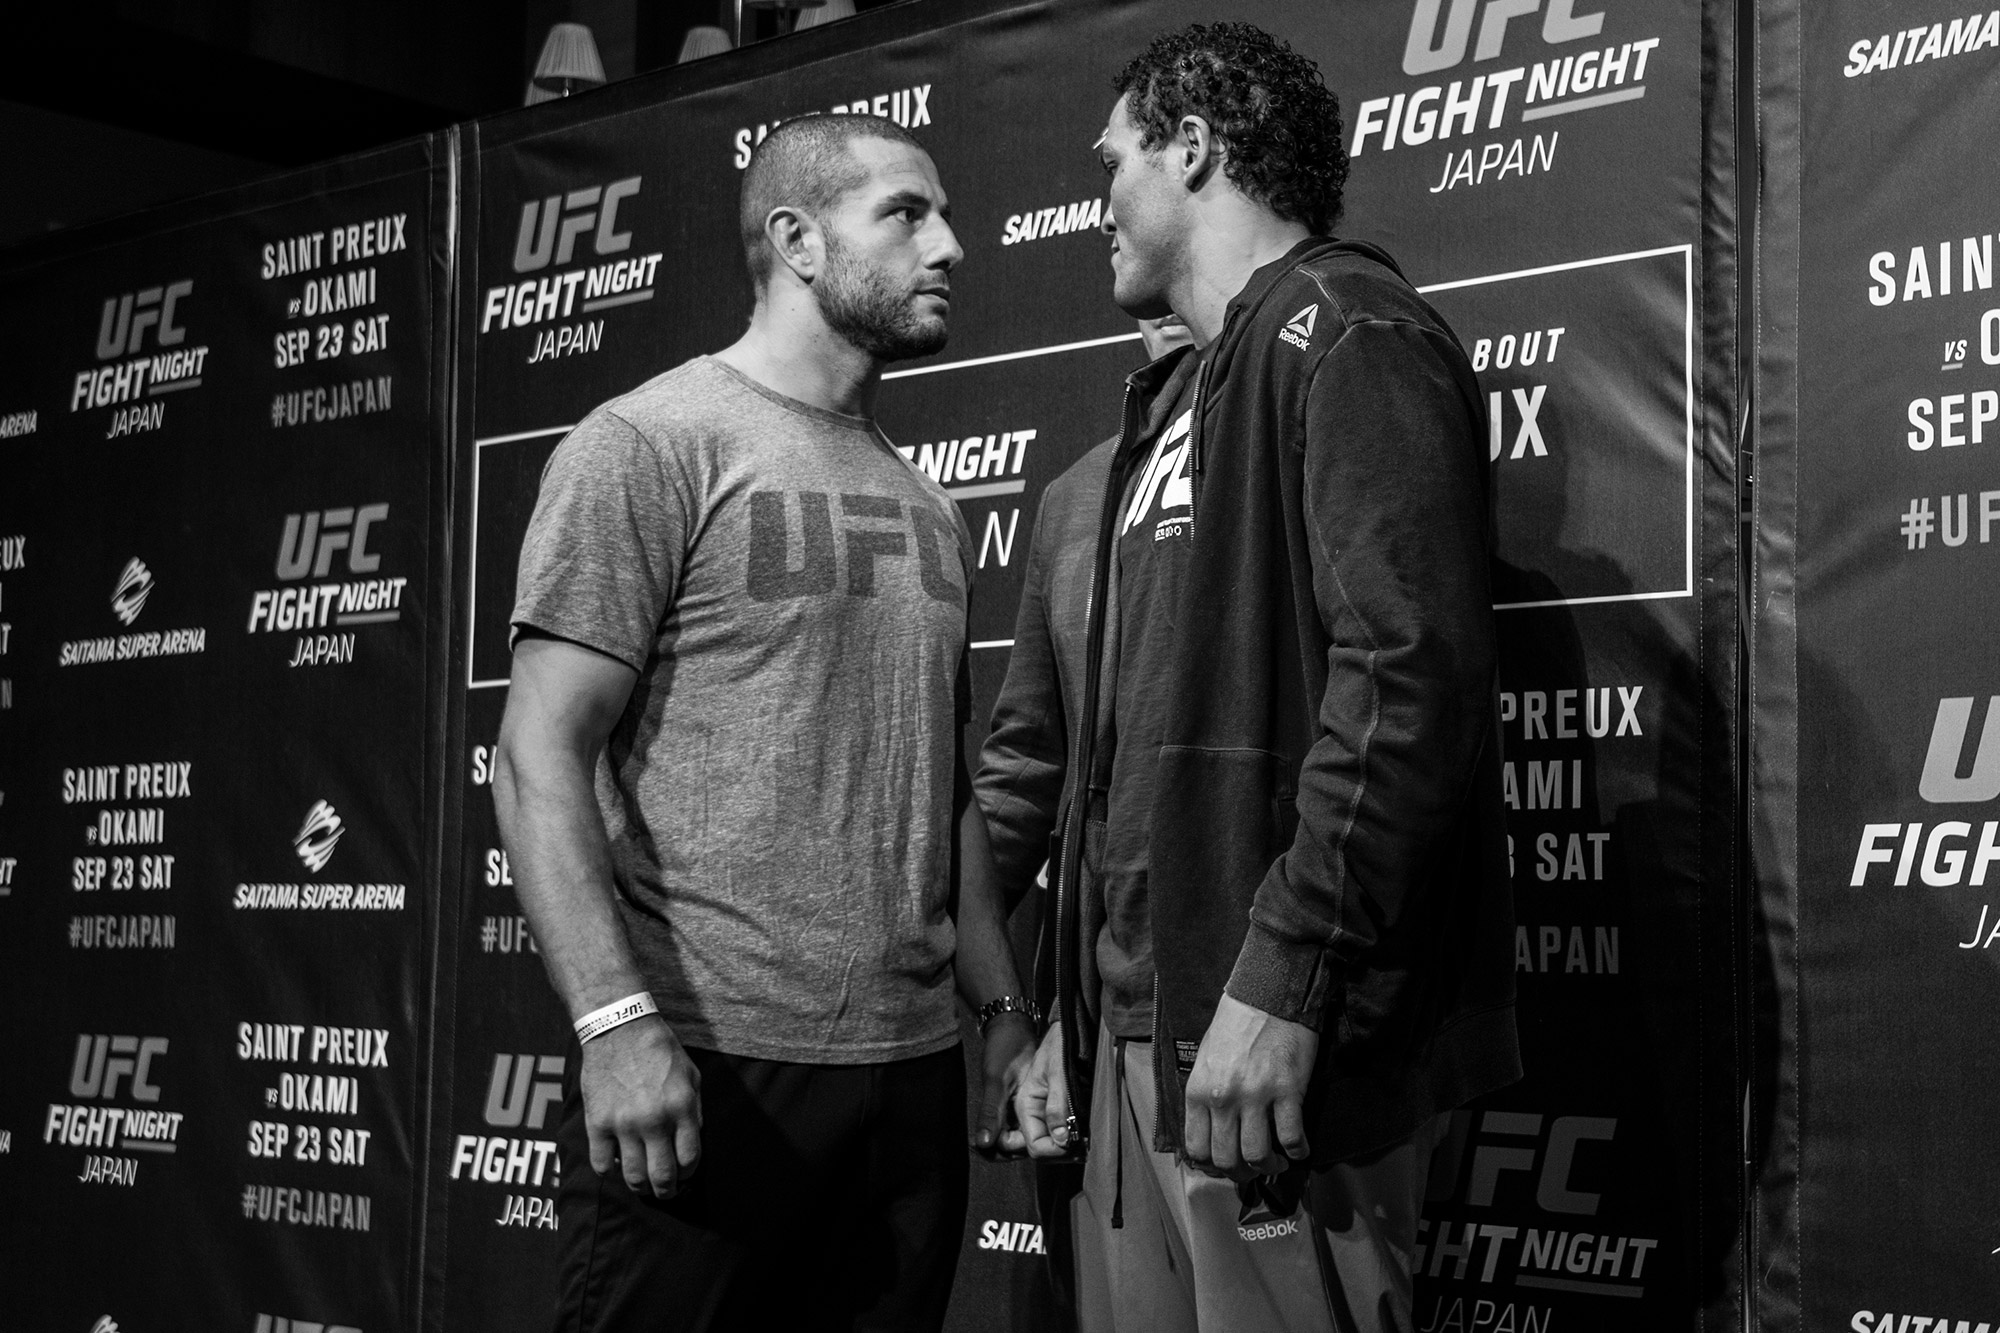 TOKYO, JAPAN - SEPTEMBER 20:  (L-R) Opponents Gokhan Saki of Netherlands and Henrique da Silva of Brazil face off during the UFC Fight Night Media Day. (Photo by John Barry/Zuffa LLC)